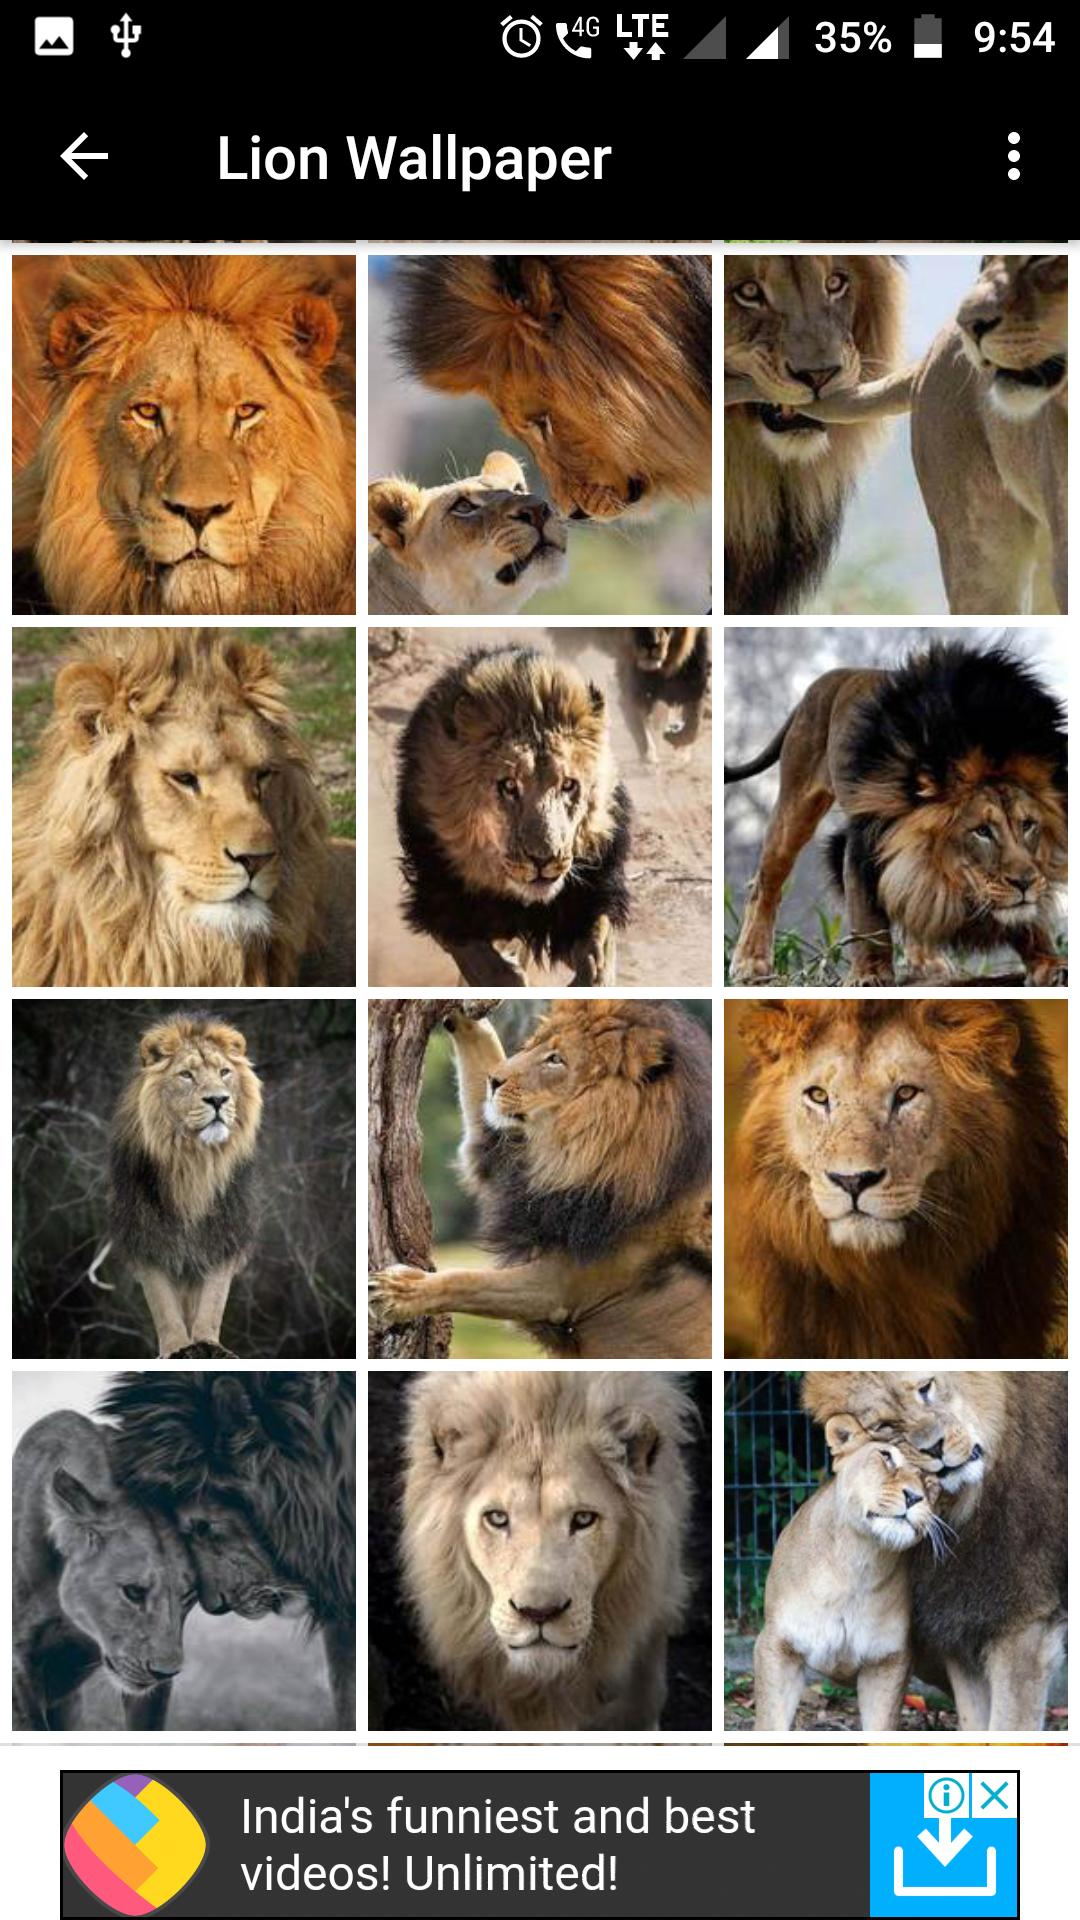 Lion Wallpapers Hd For Android Apk Download Images, Photos, Reviews